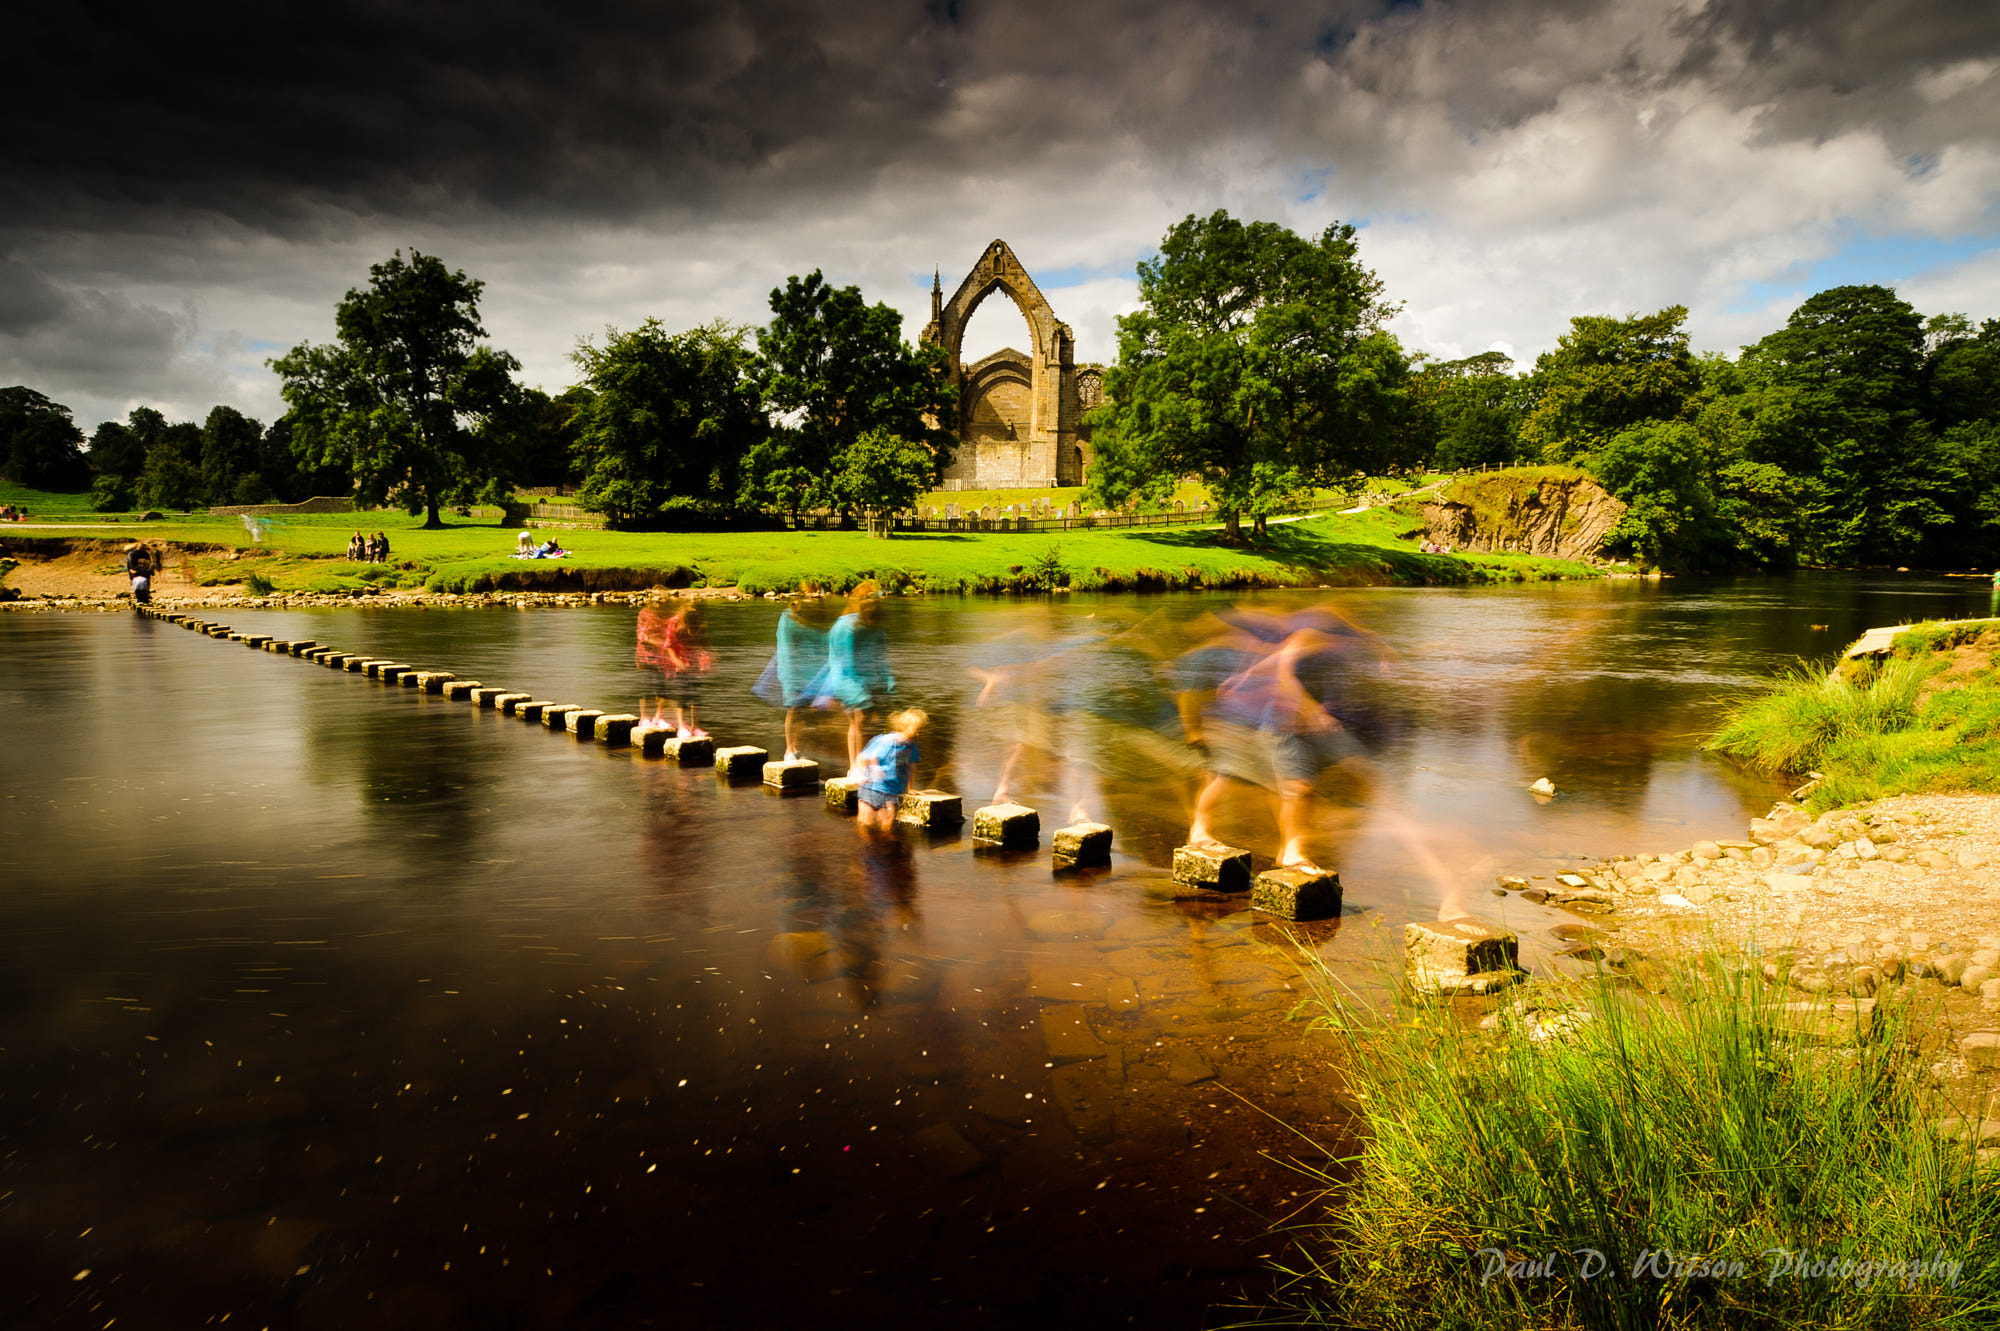 bolton abbey stepping stones by pd wilson photography